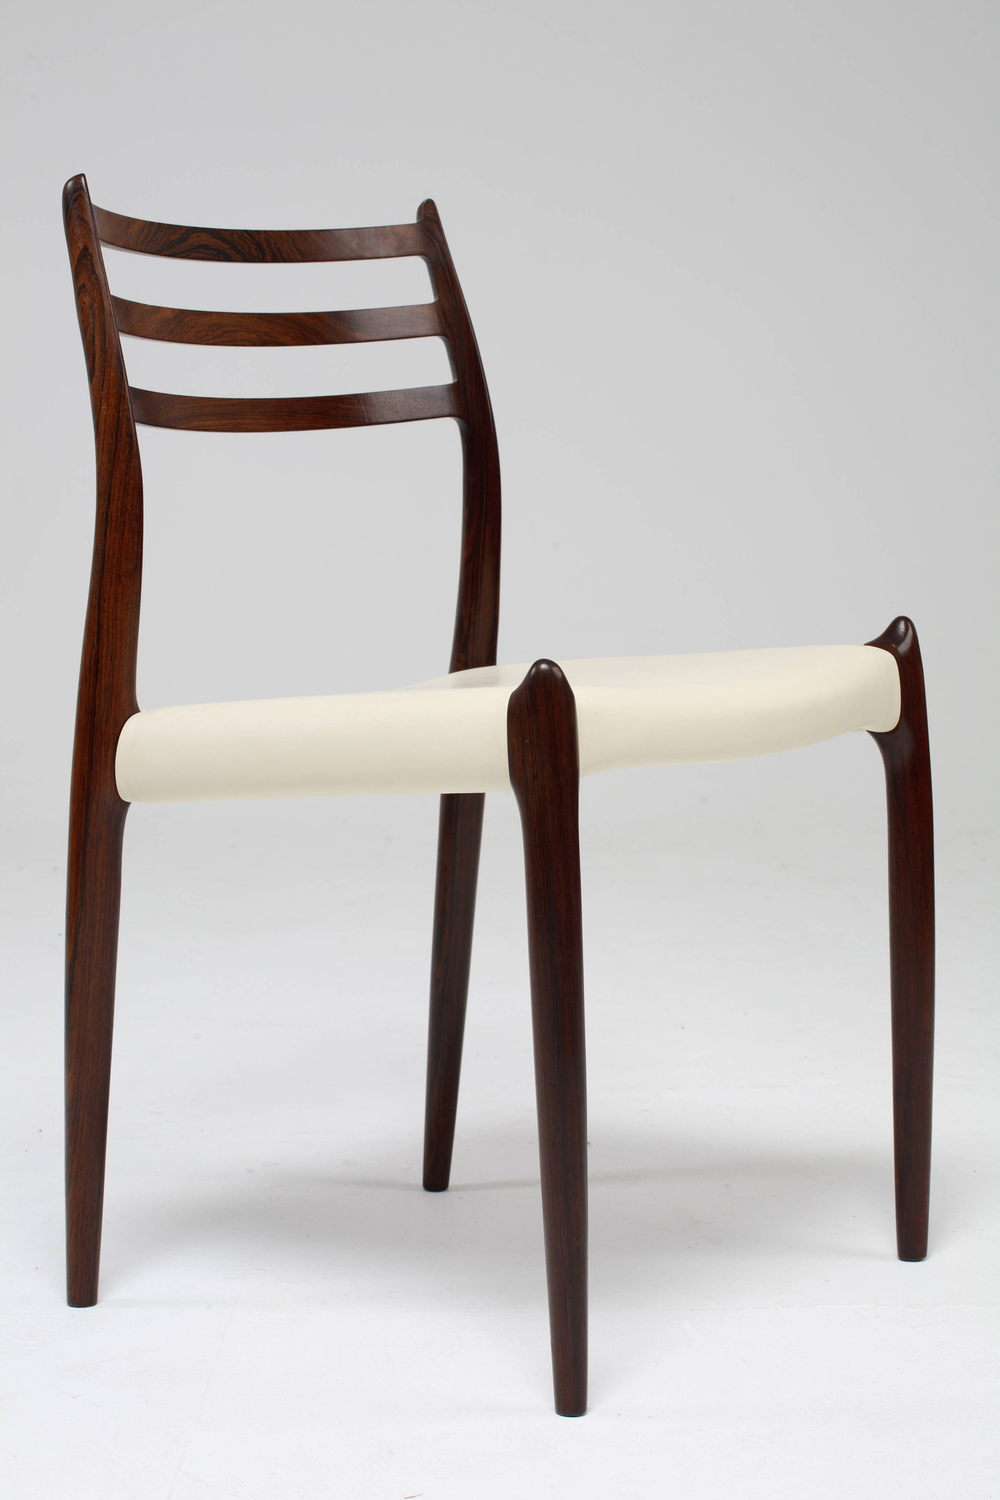 N O Moller 1962 Dining Chair • made 1962-90 •